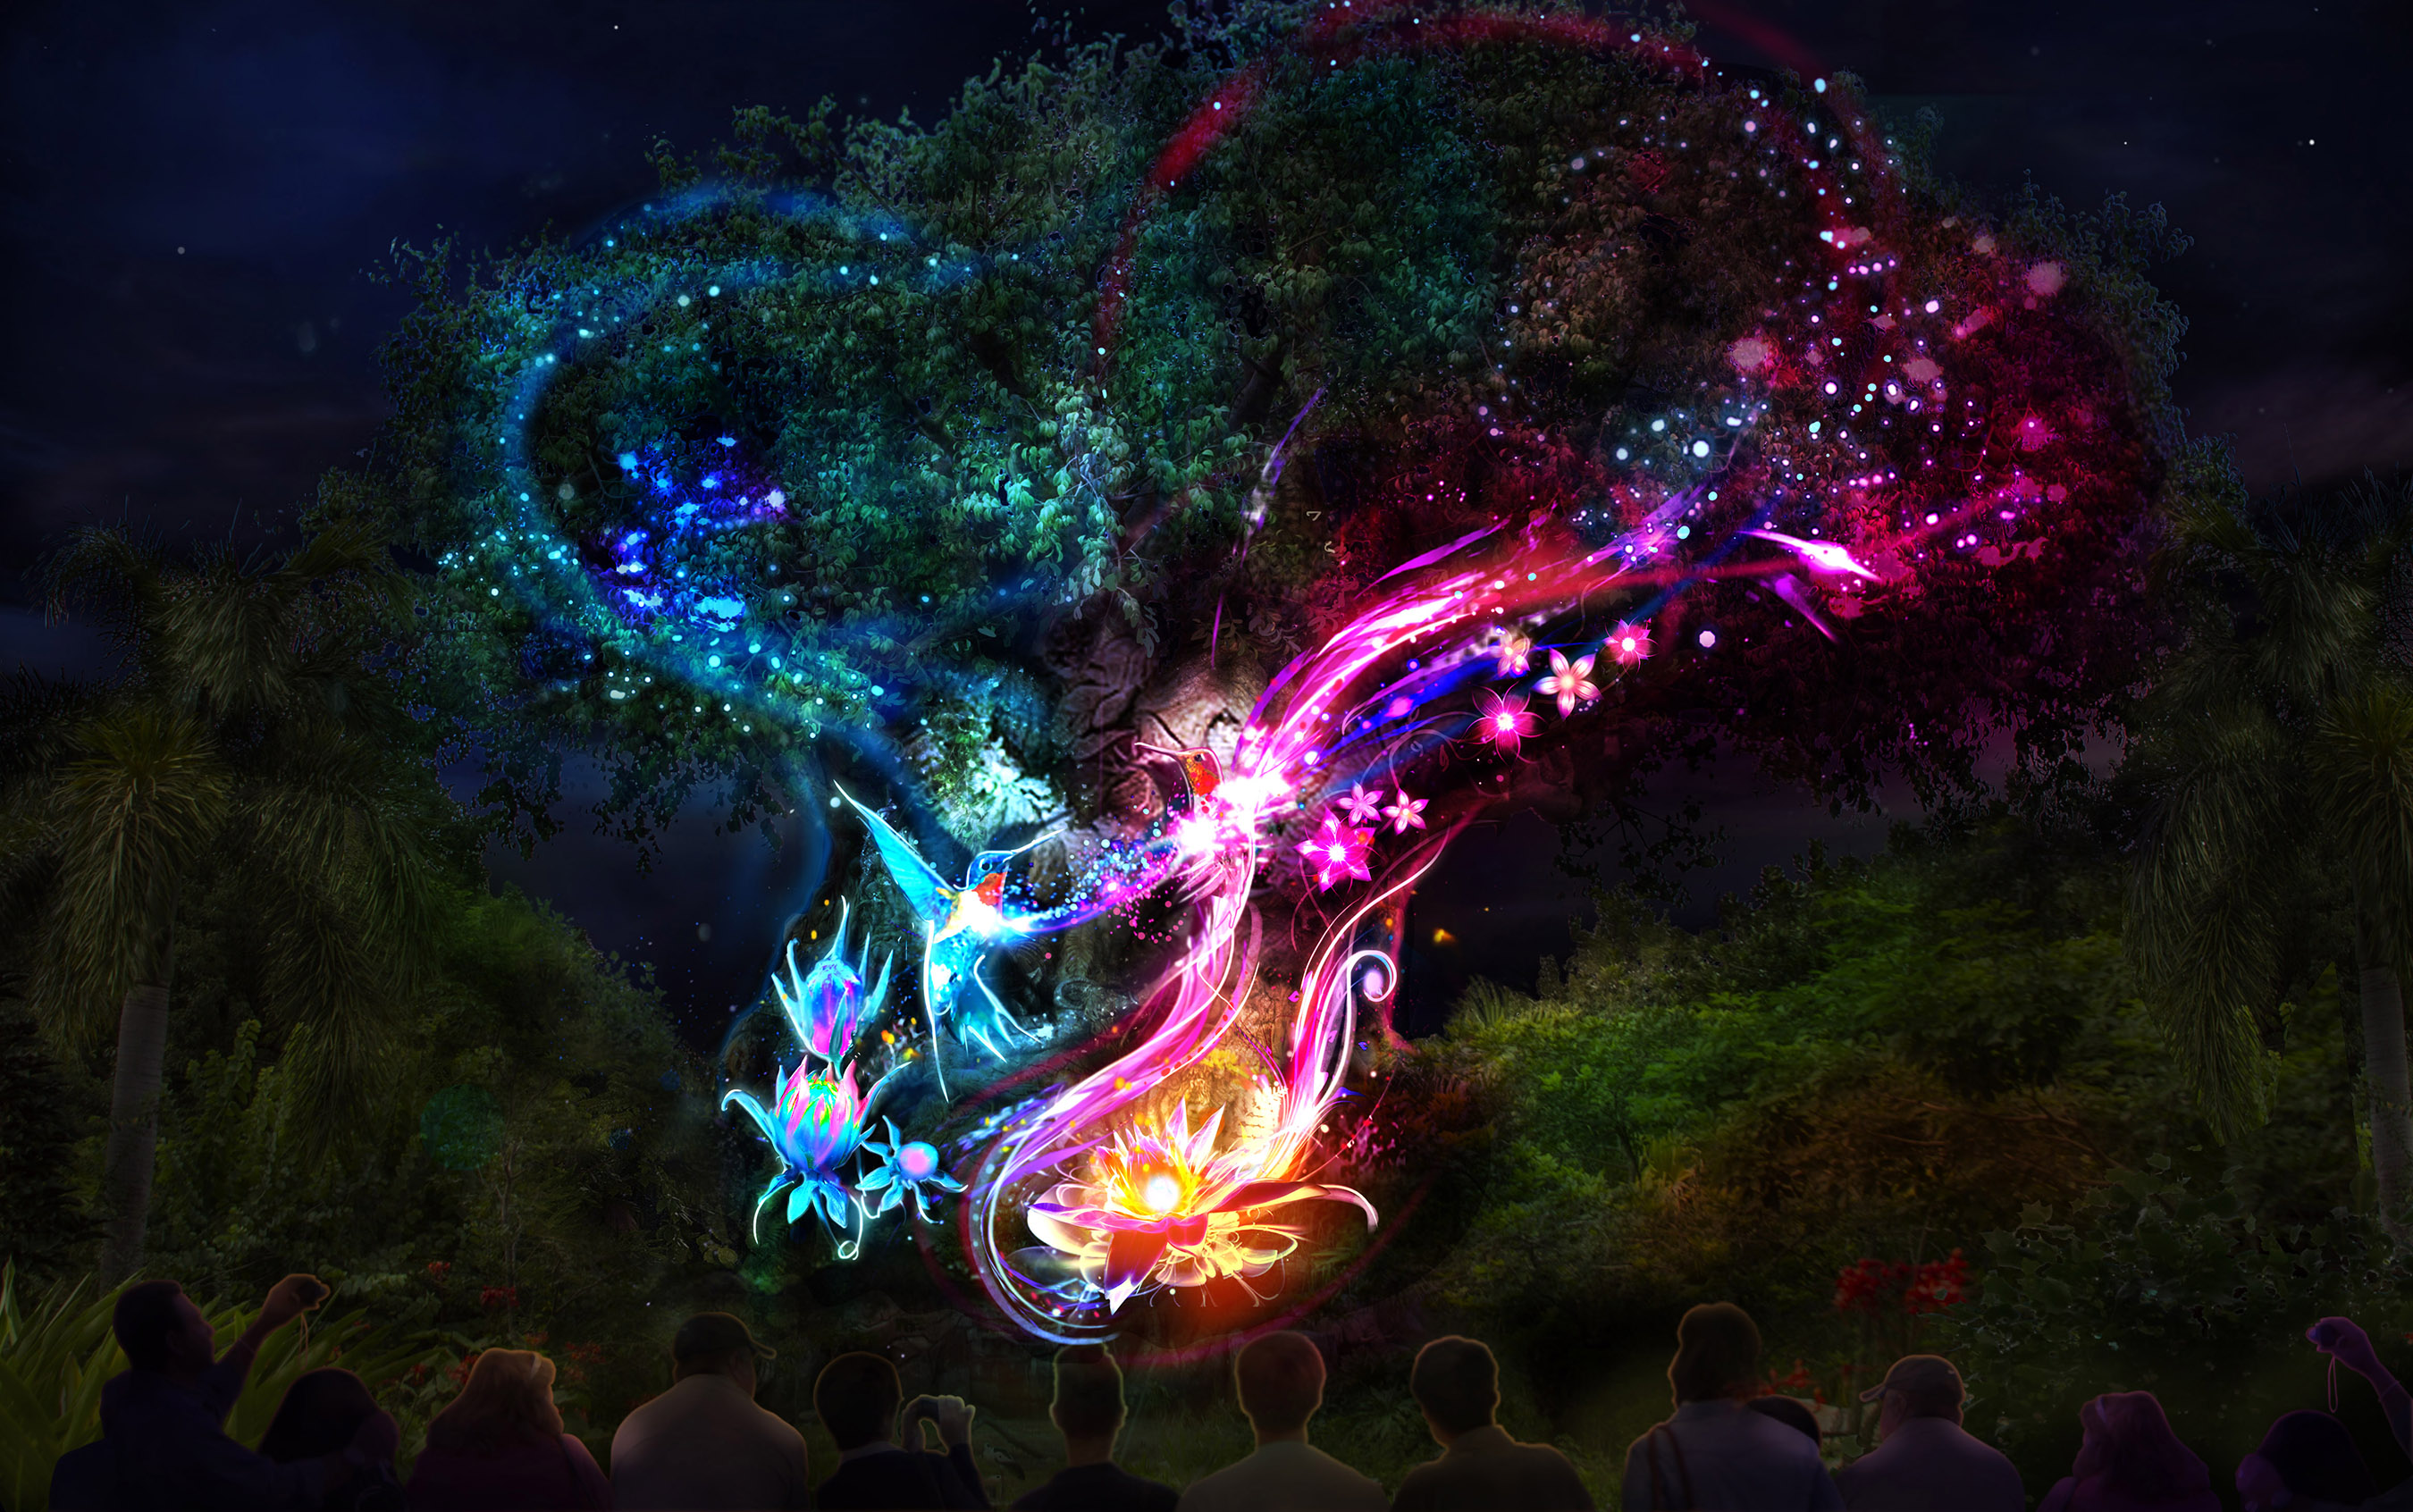 New Adventures Unfold as Disney's Animal Kingdom Comes Alive at Night